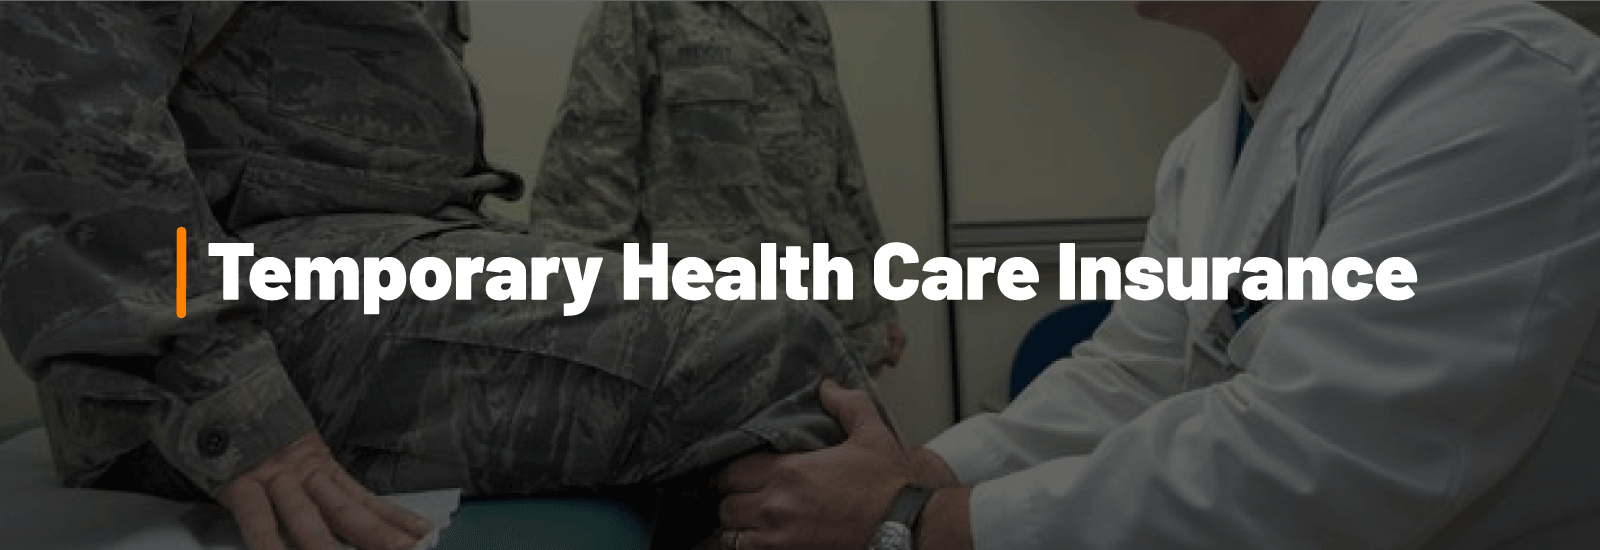 Temporary Health Care Insurance